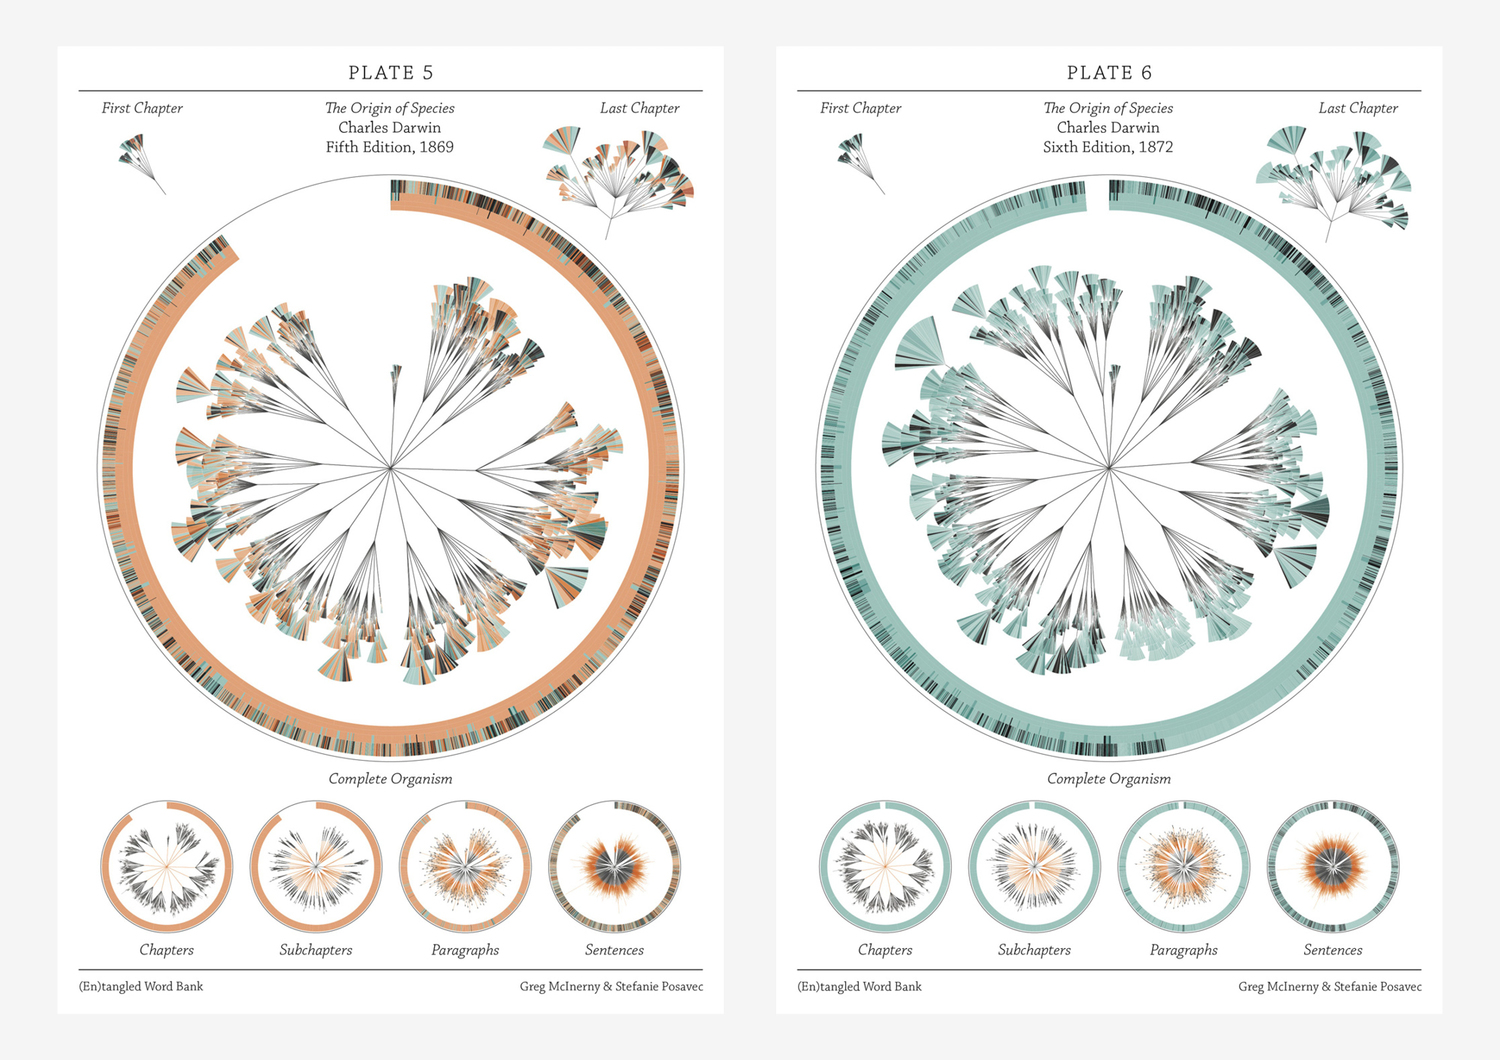 There is grandeur in this view of life – visualising Darwin